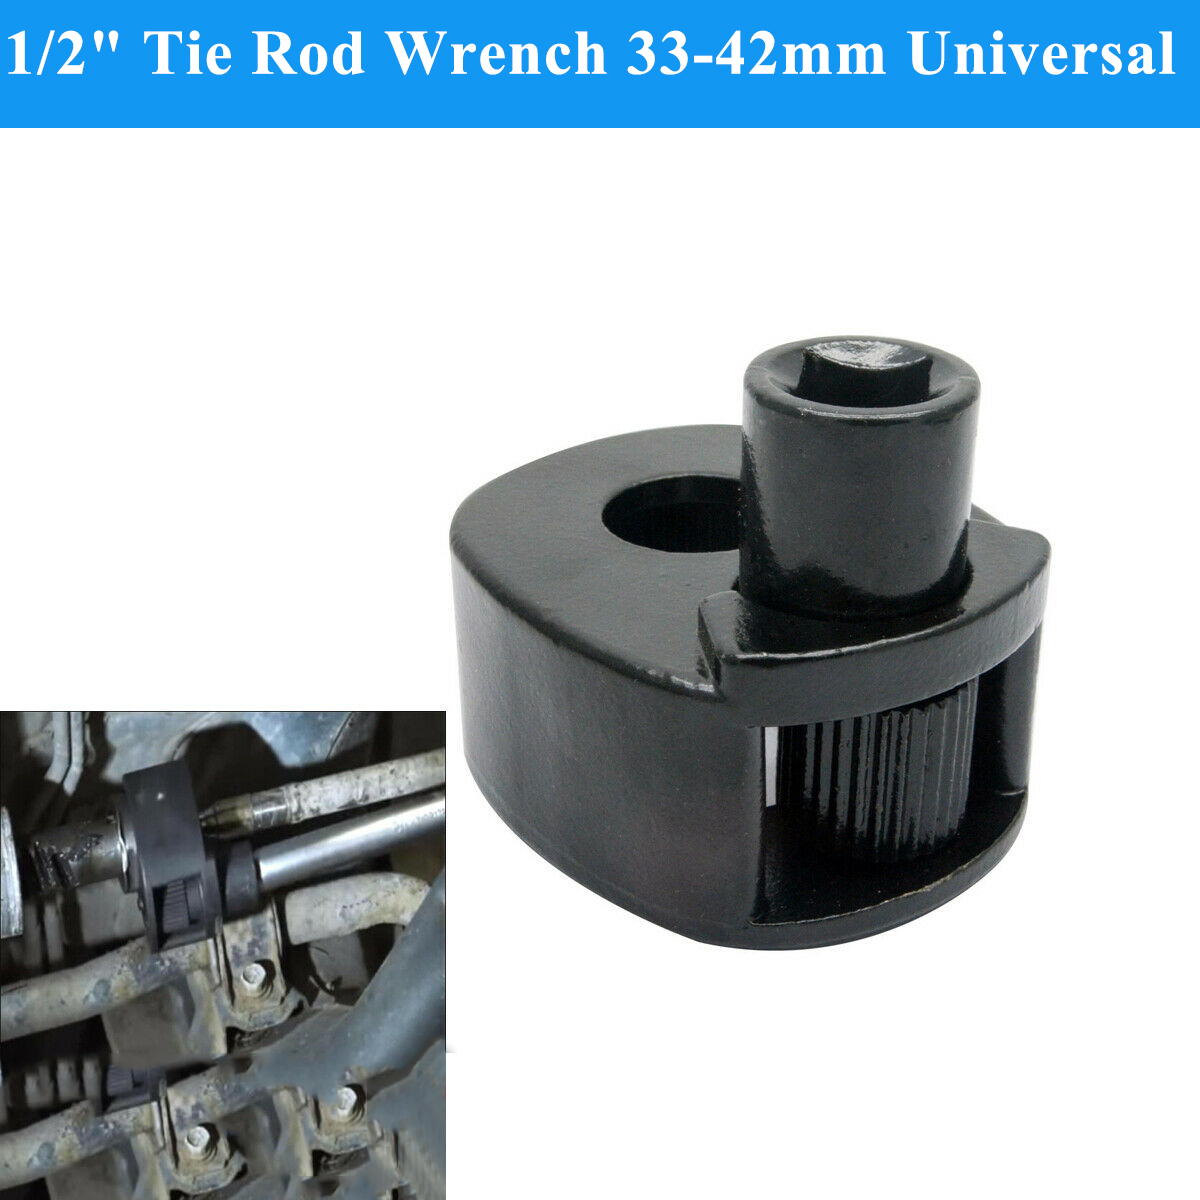 1/2 Inch Tie Rod Wrench 33-42mm Universal Steering Track Rod Removal Garage Tool